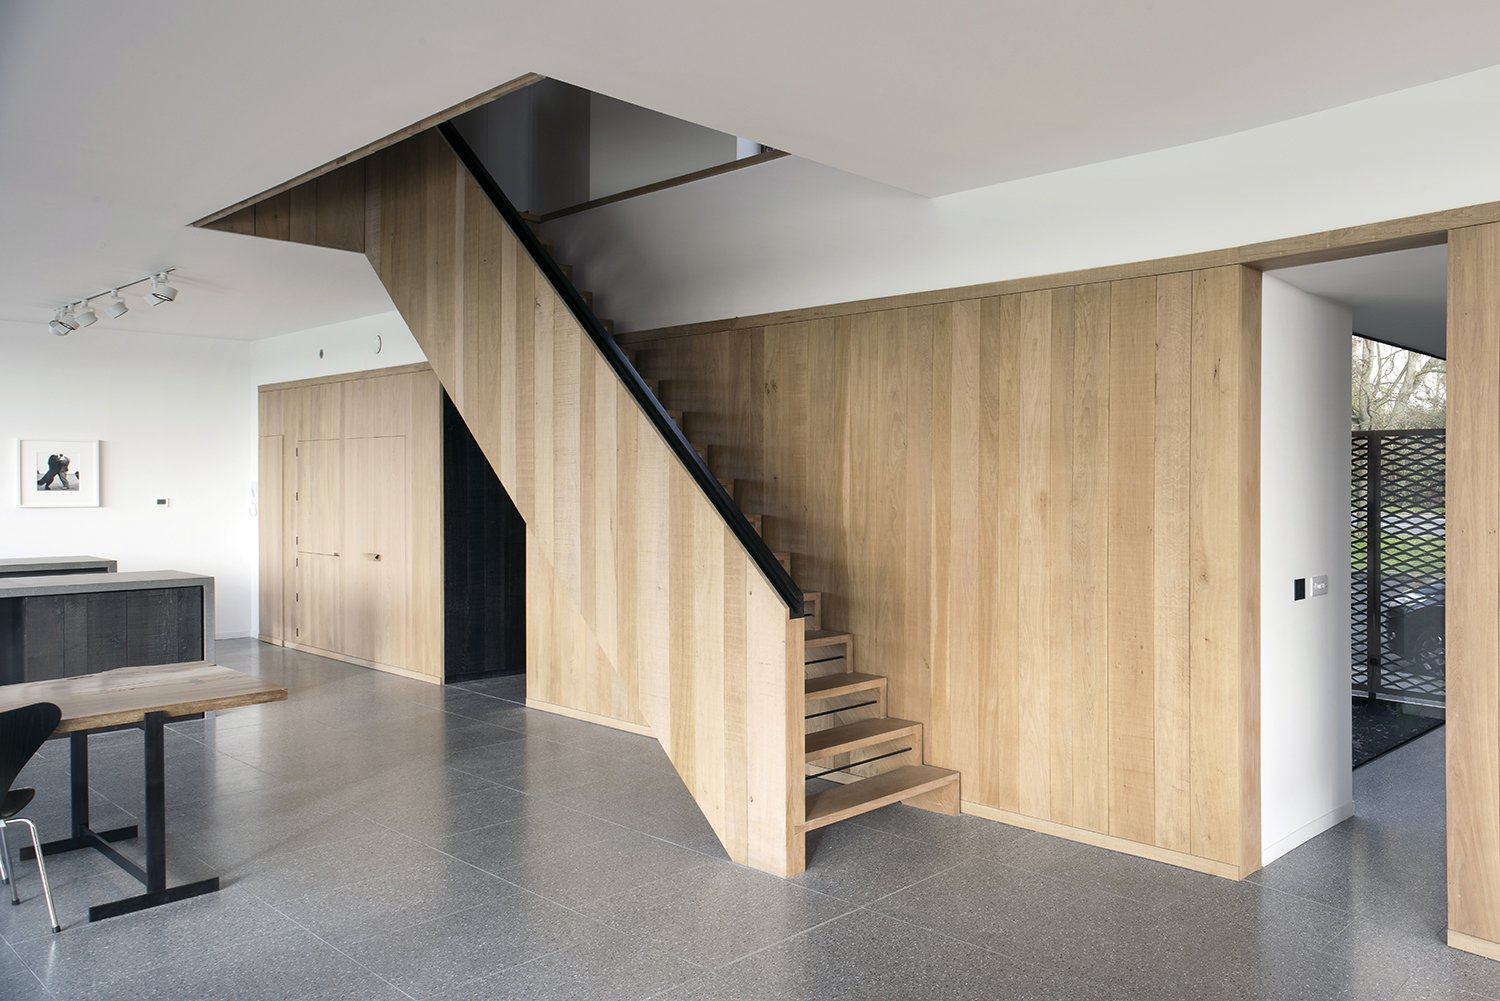 A palette of natural materials is employed in both the interior and exterior. An oak wall and staircase, designed by Jeremy Pitts, join a floor made of gray terrazzo tile.  Stairways from Bold House Doubles as a British Town's Welcome Sign